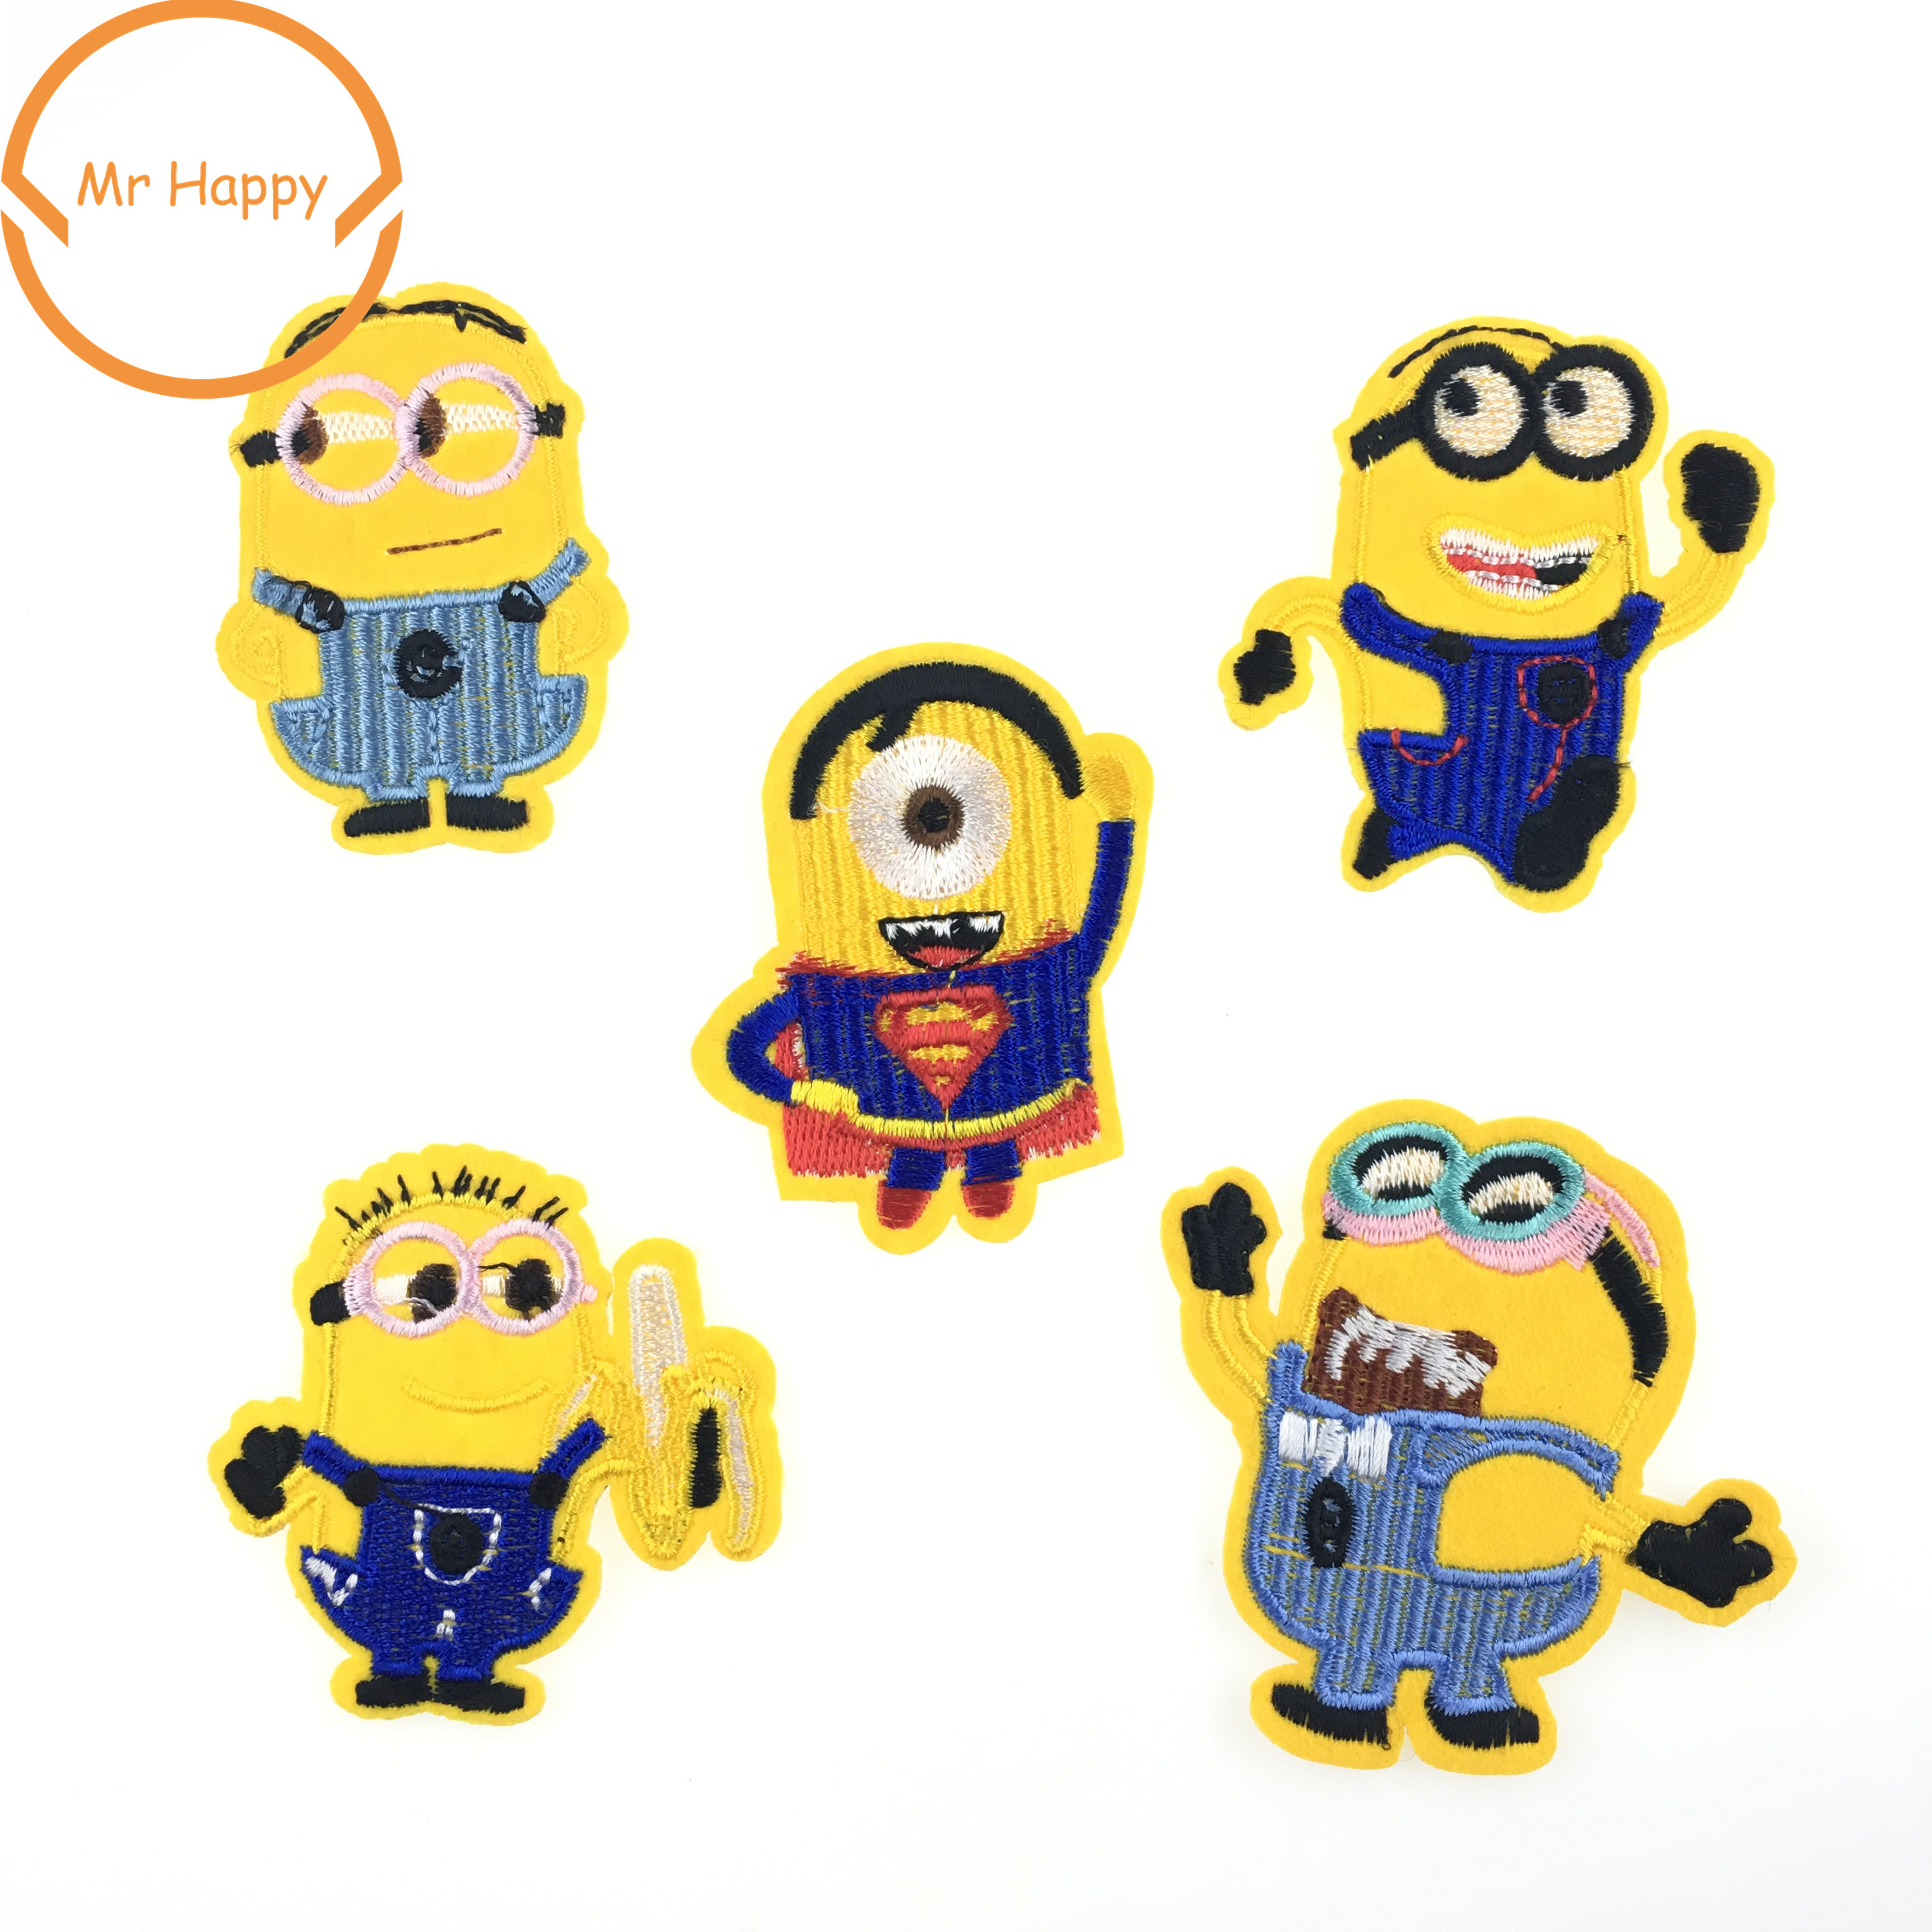 Kevin the Minion Iron on Applique Patch